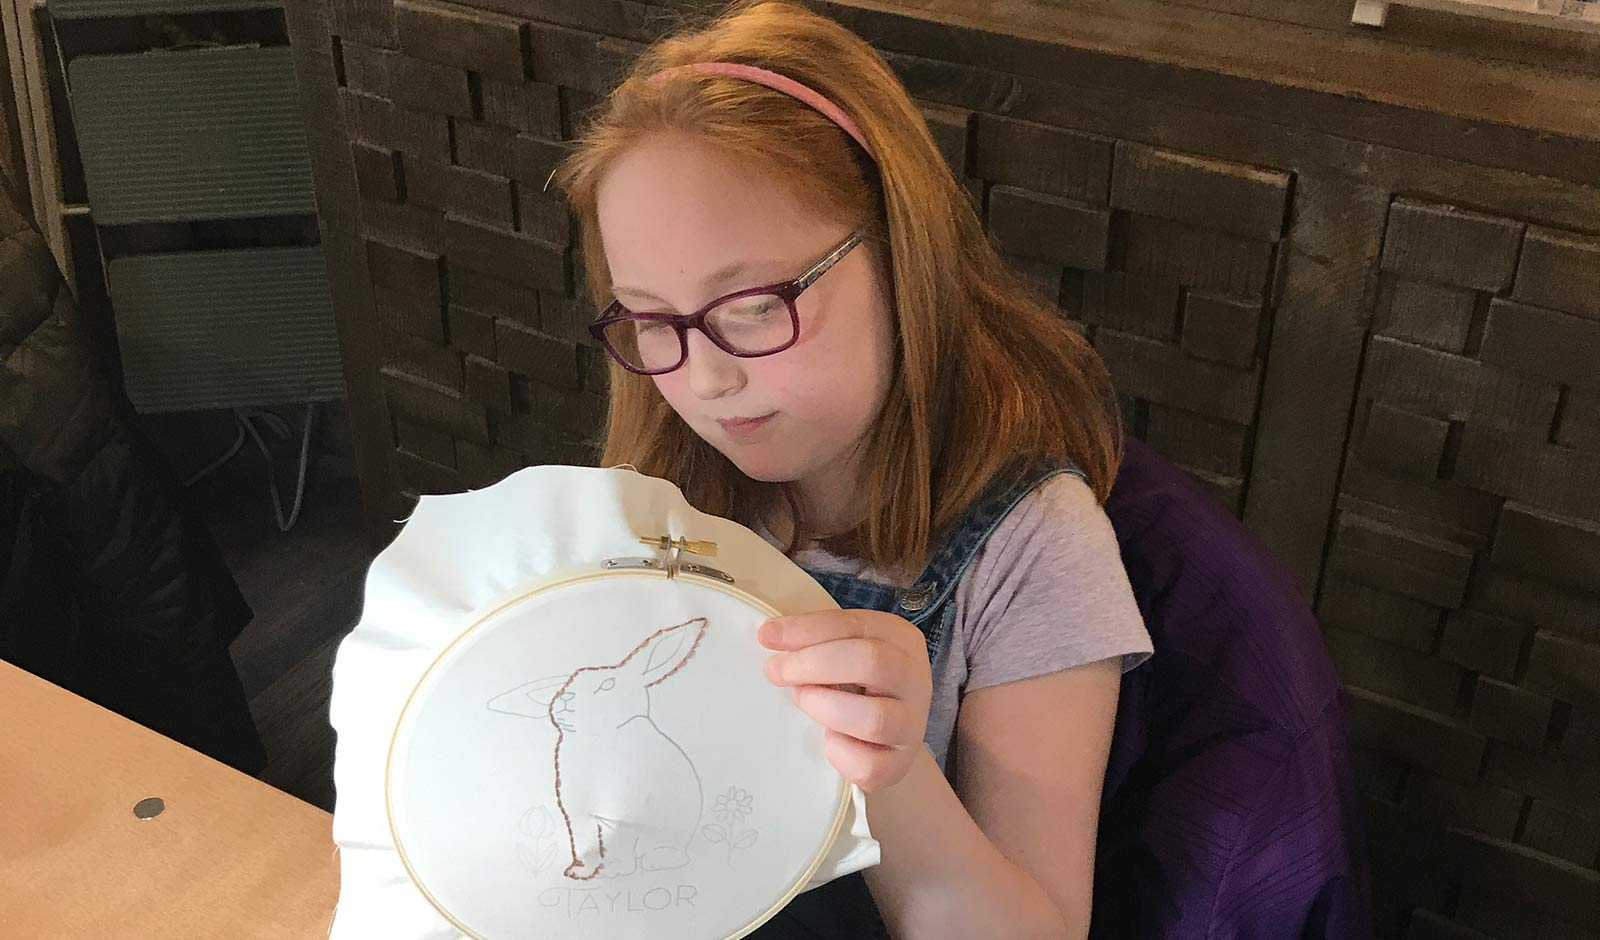 Young girl stitching rabbit pattern in a hoop.